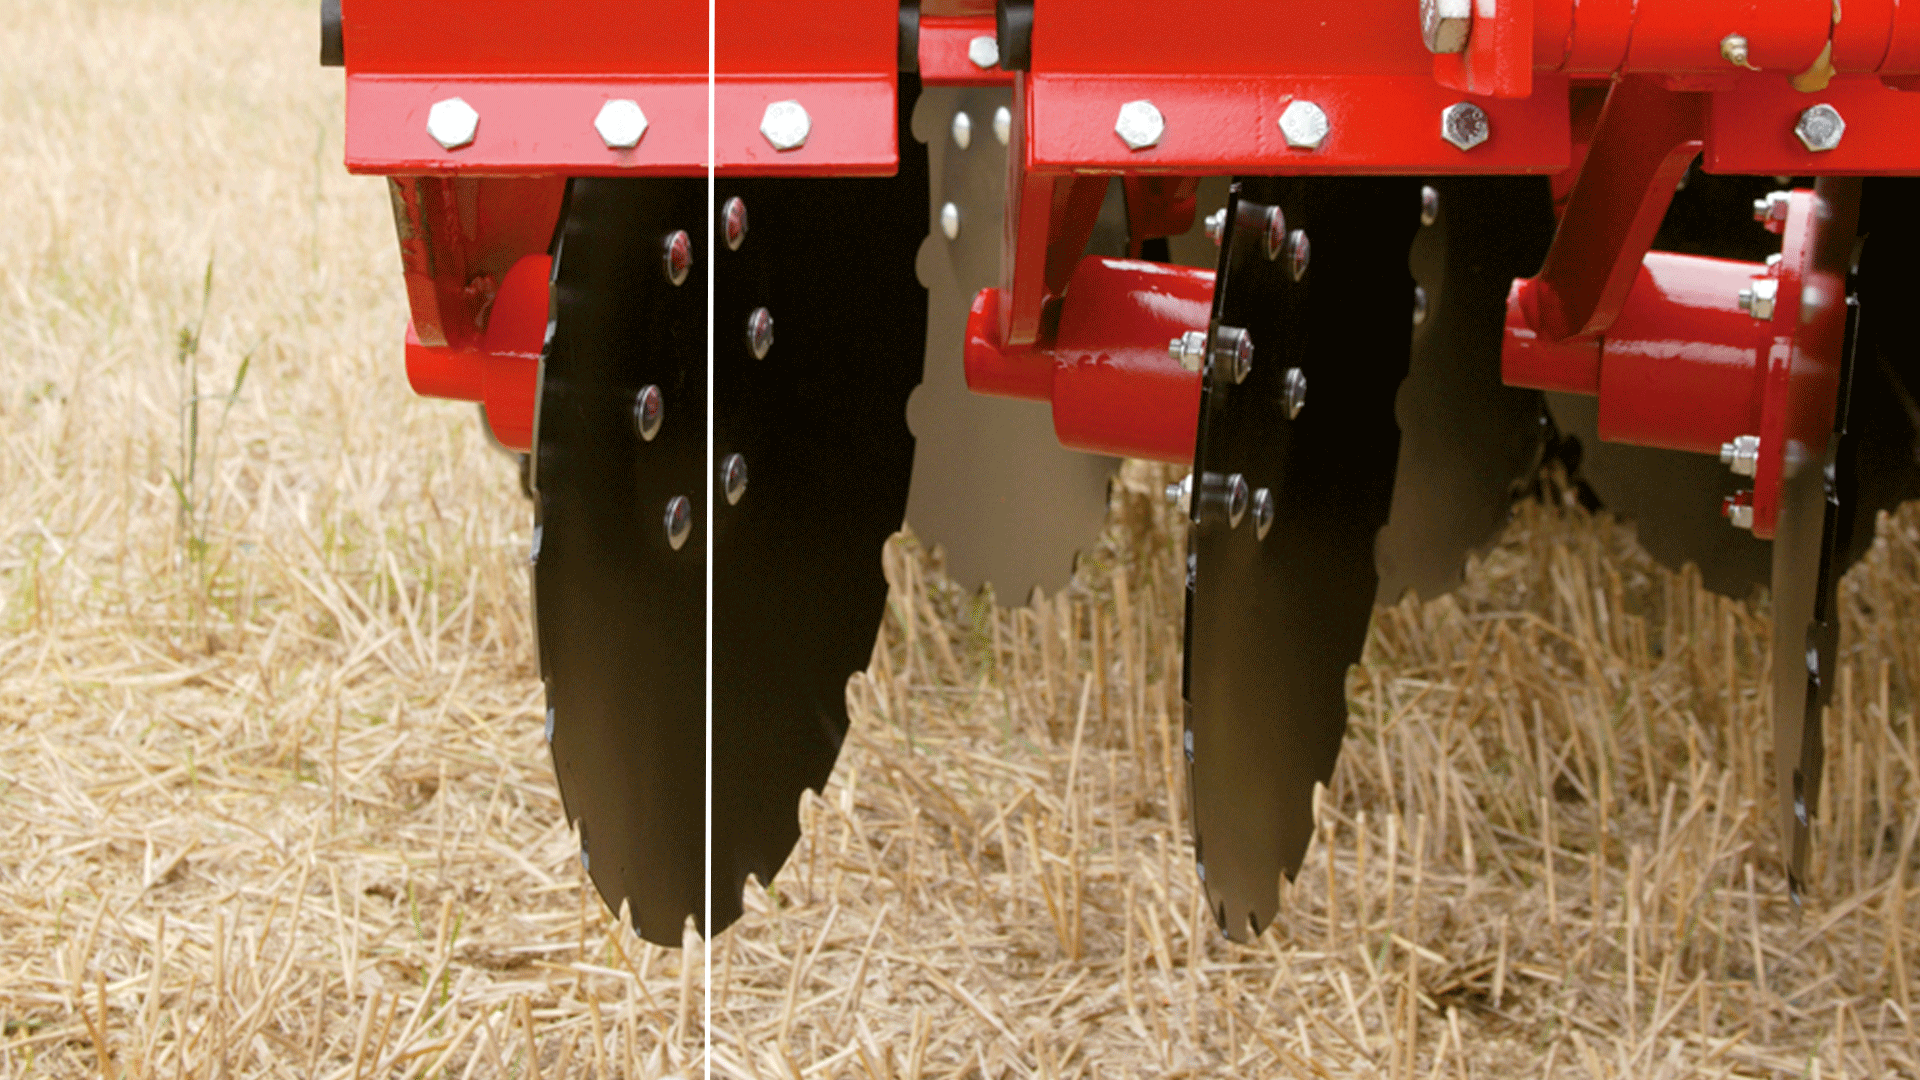 Using the Combi-Discs for tillage near the surface, the discs are almost perpendicular on the soil. Here, the discs press the soil horizontally down and the entire surface is moved. The vertical disc loosens the soil instead of pushing it outwards like a traditional concave disc does and the risk of smearing is reduced.